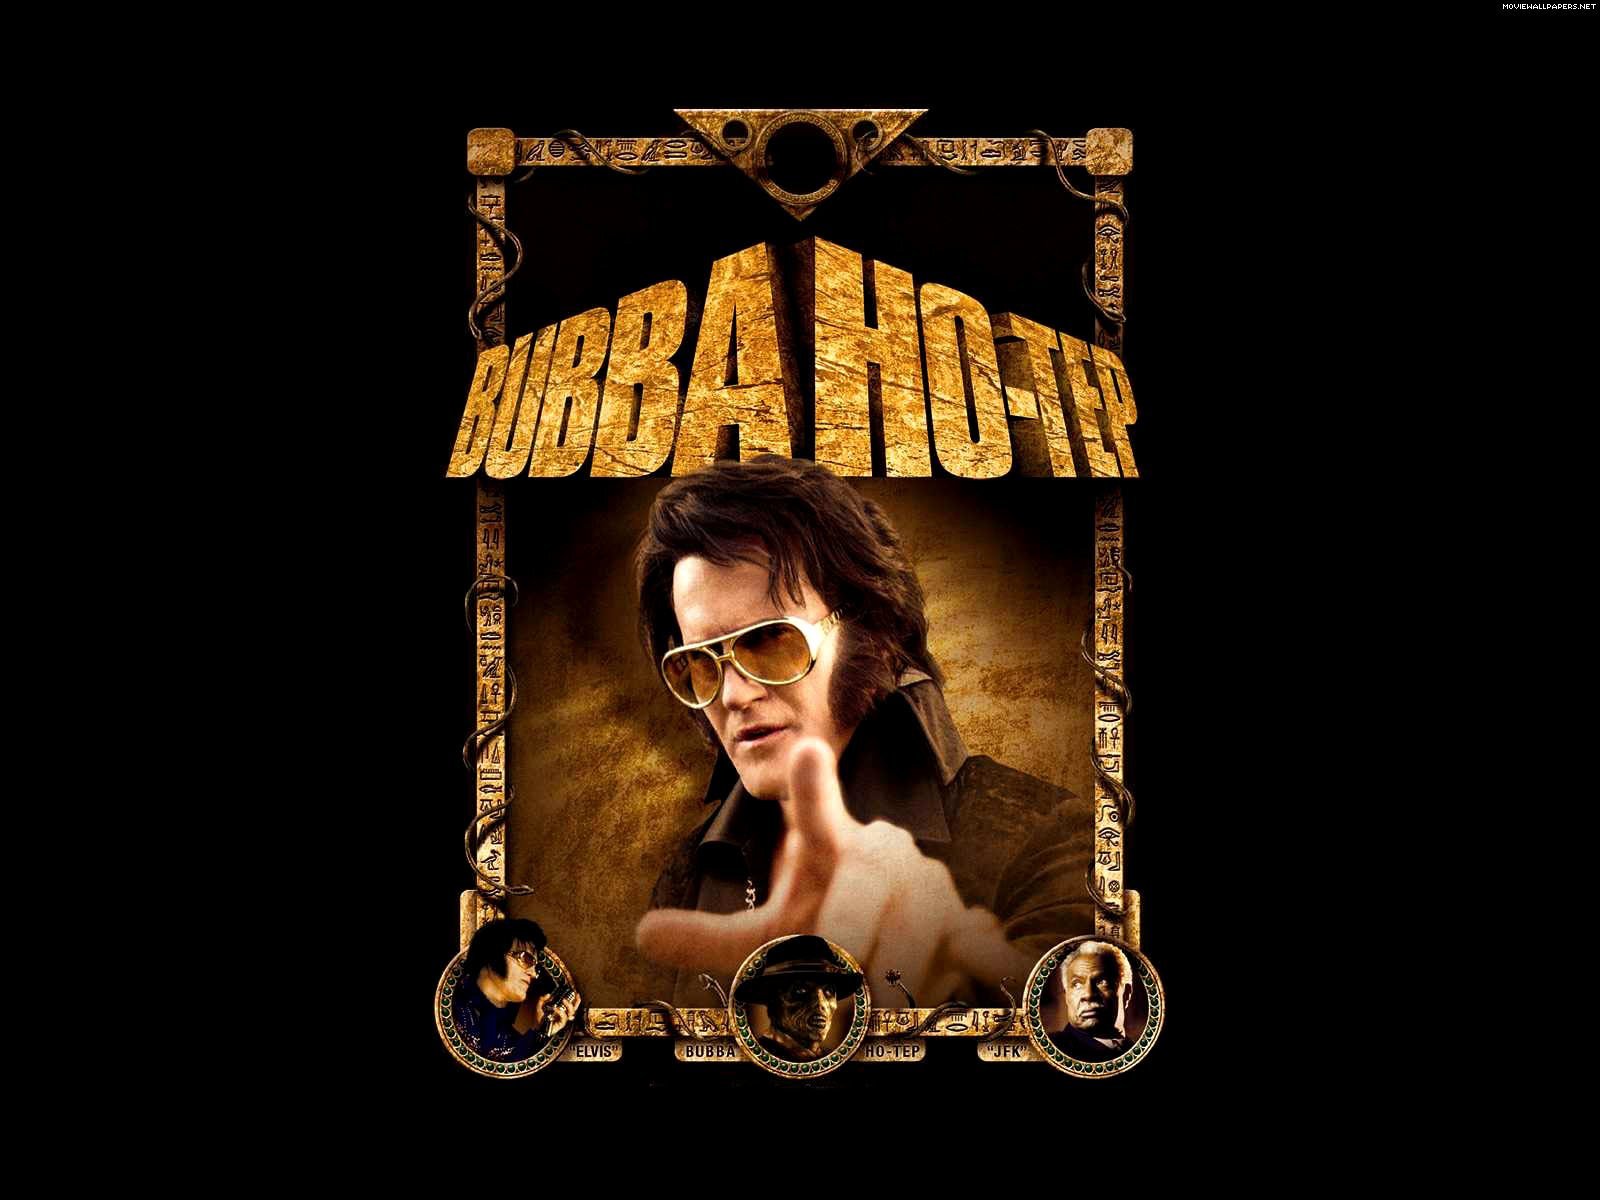 Bubba hotep Movie HD Wallpapers, Desktop Backgrounds ...